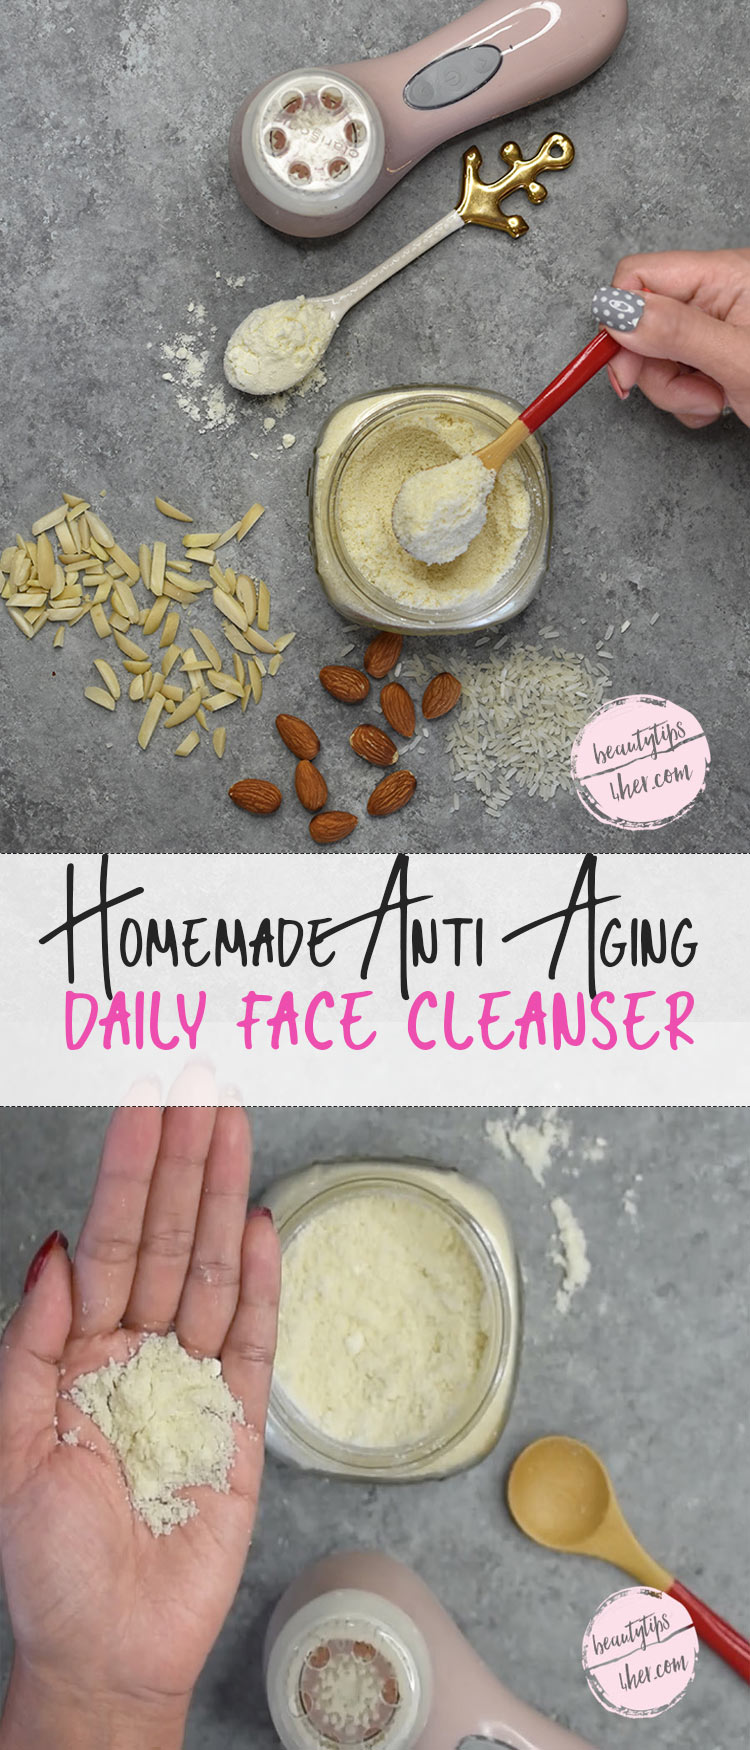 This homemade face cleanser not only moisturizes the skin, it also exfoliates it. That removes the dead skin cells that don't retain moisture and exposes new skin cells that do, plumping your skin and giving it a more youthful look.